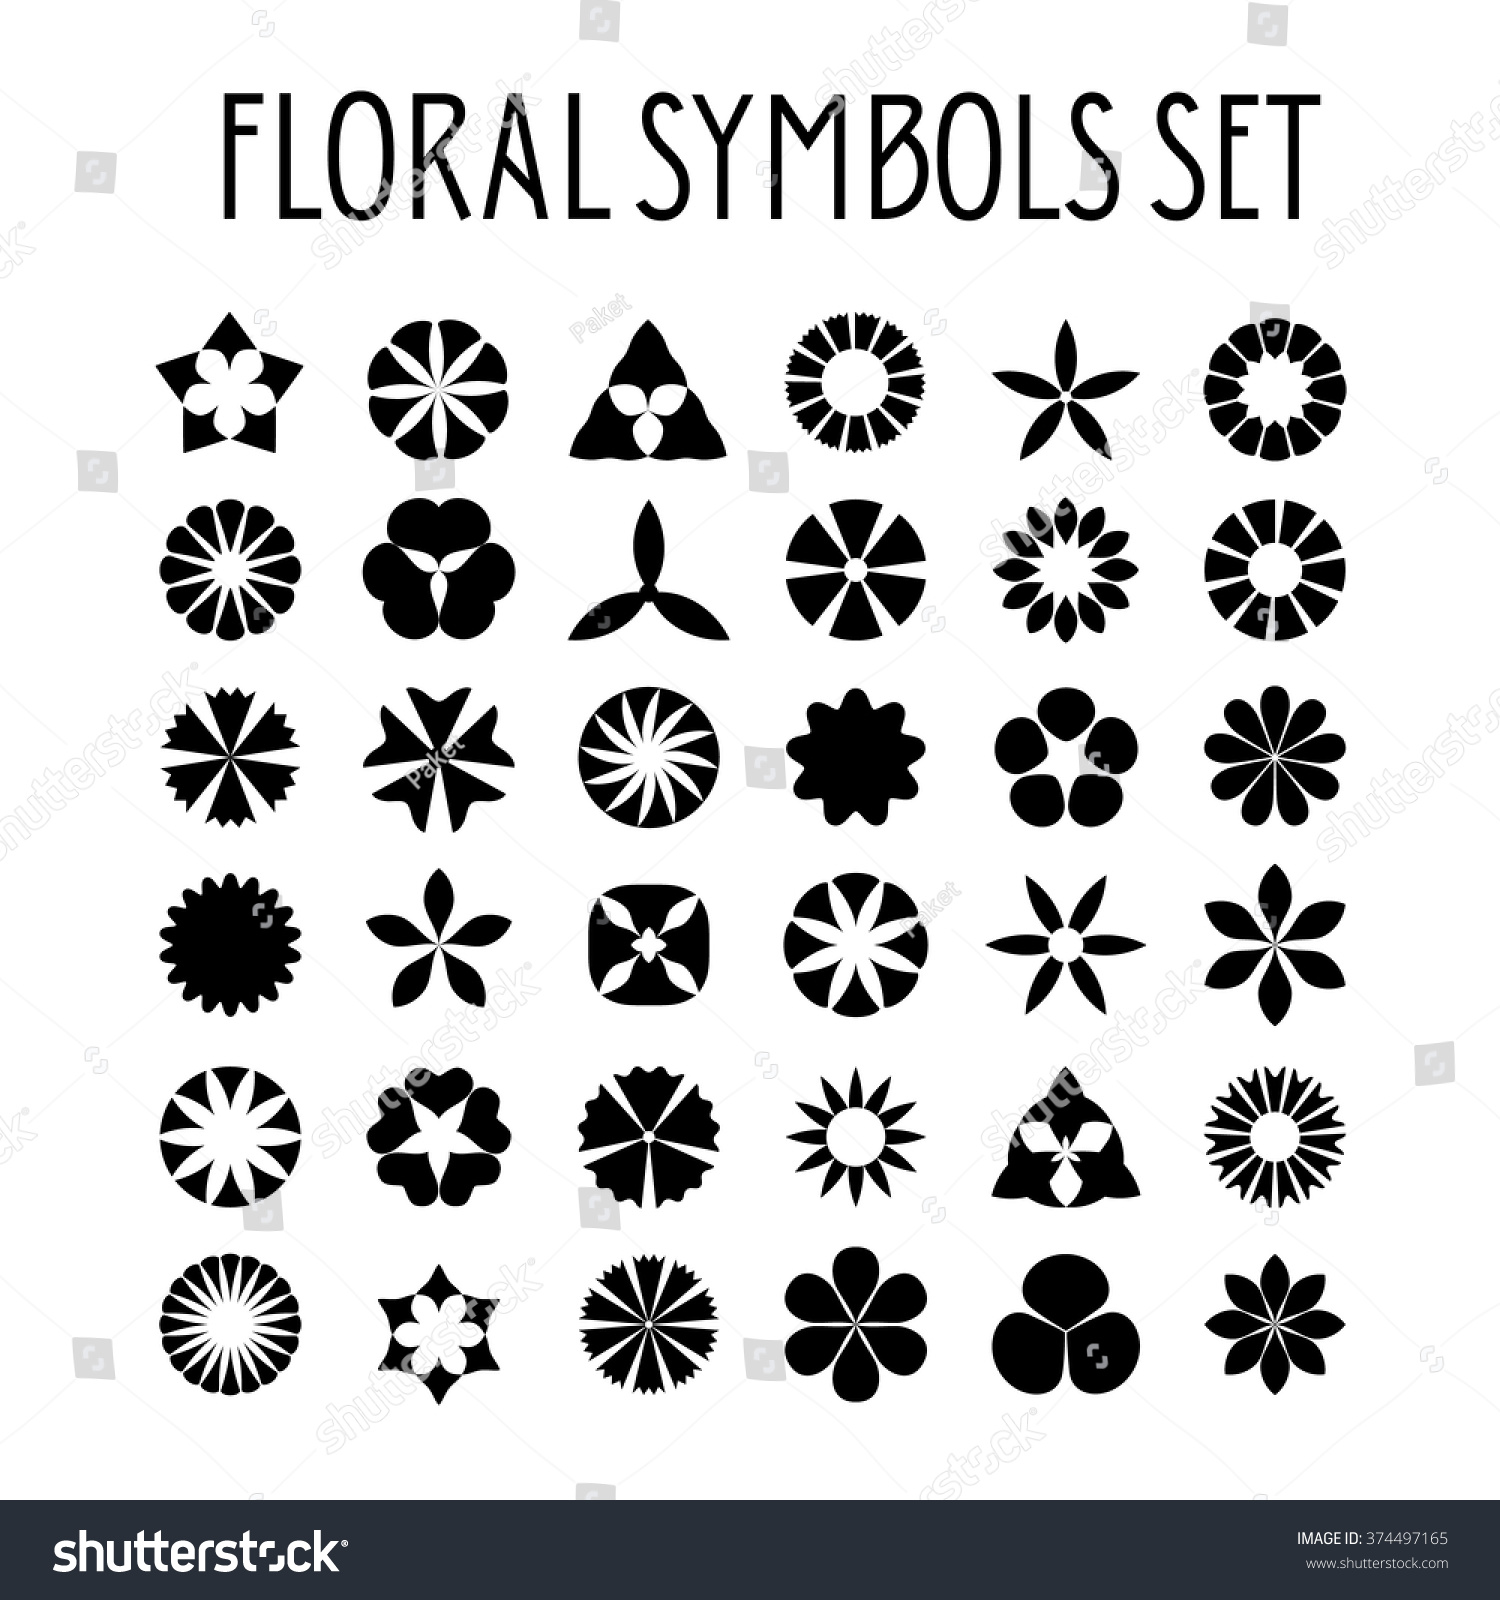 Flower Symbols Set Decorative Floral Icons Stock Vector Royalty